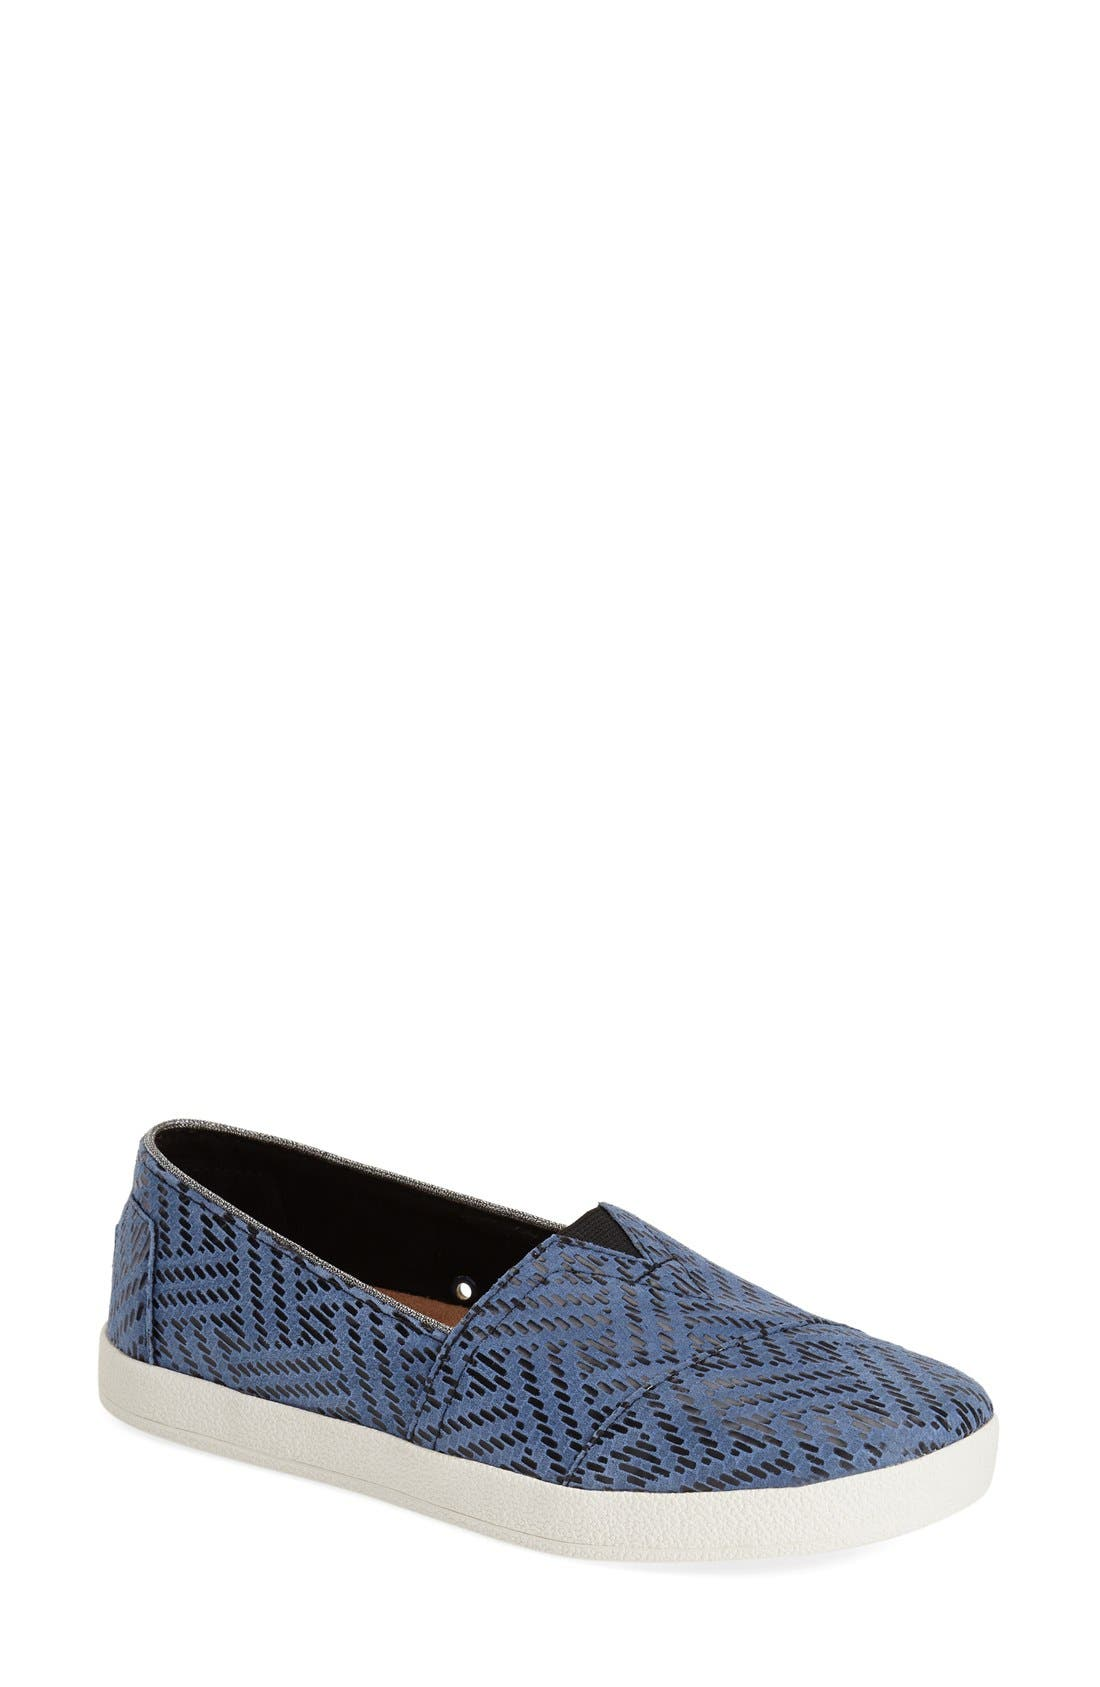 TOMS,                             'Avalon' Leather Slip-On,                             Main thumbnail 1, color,                             420